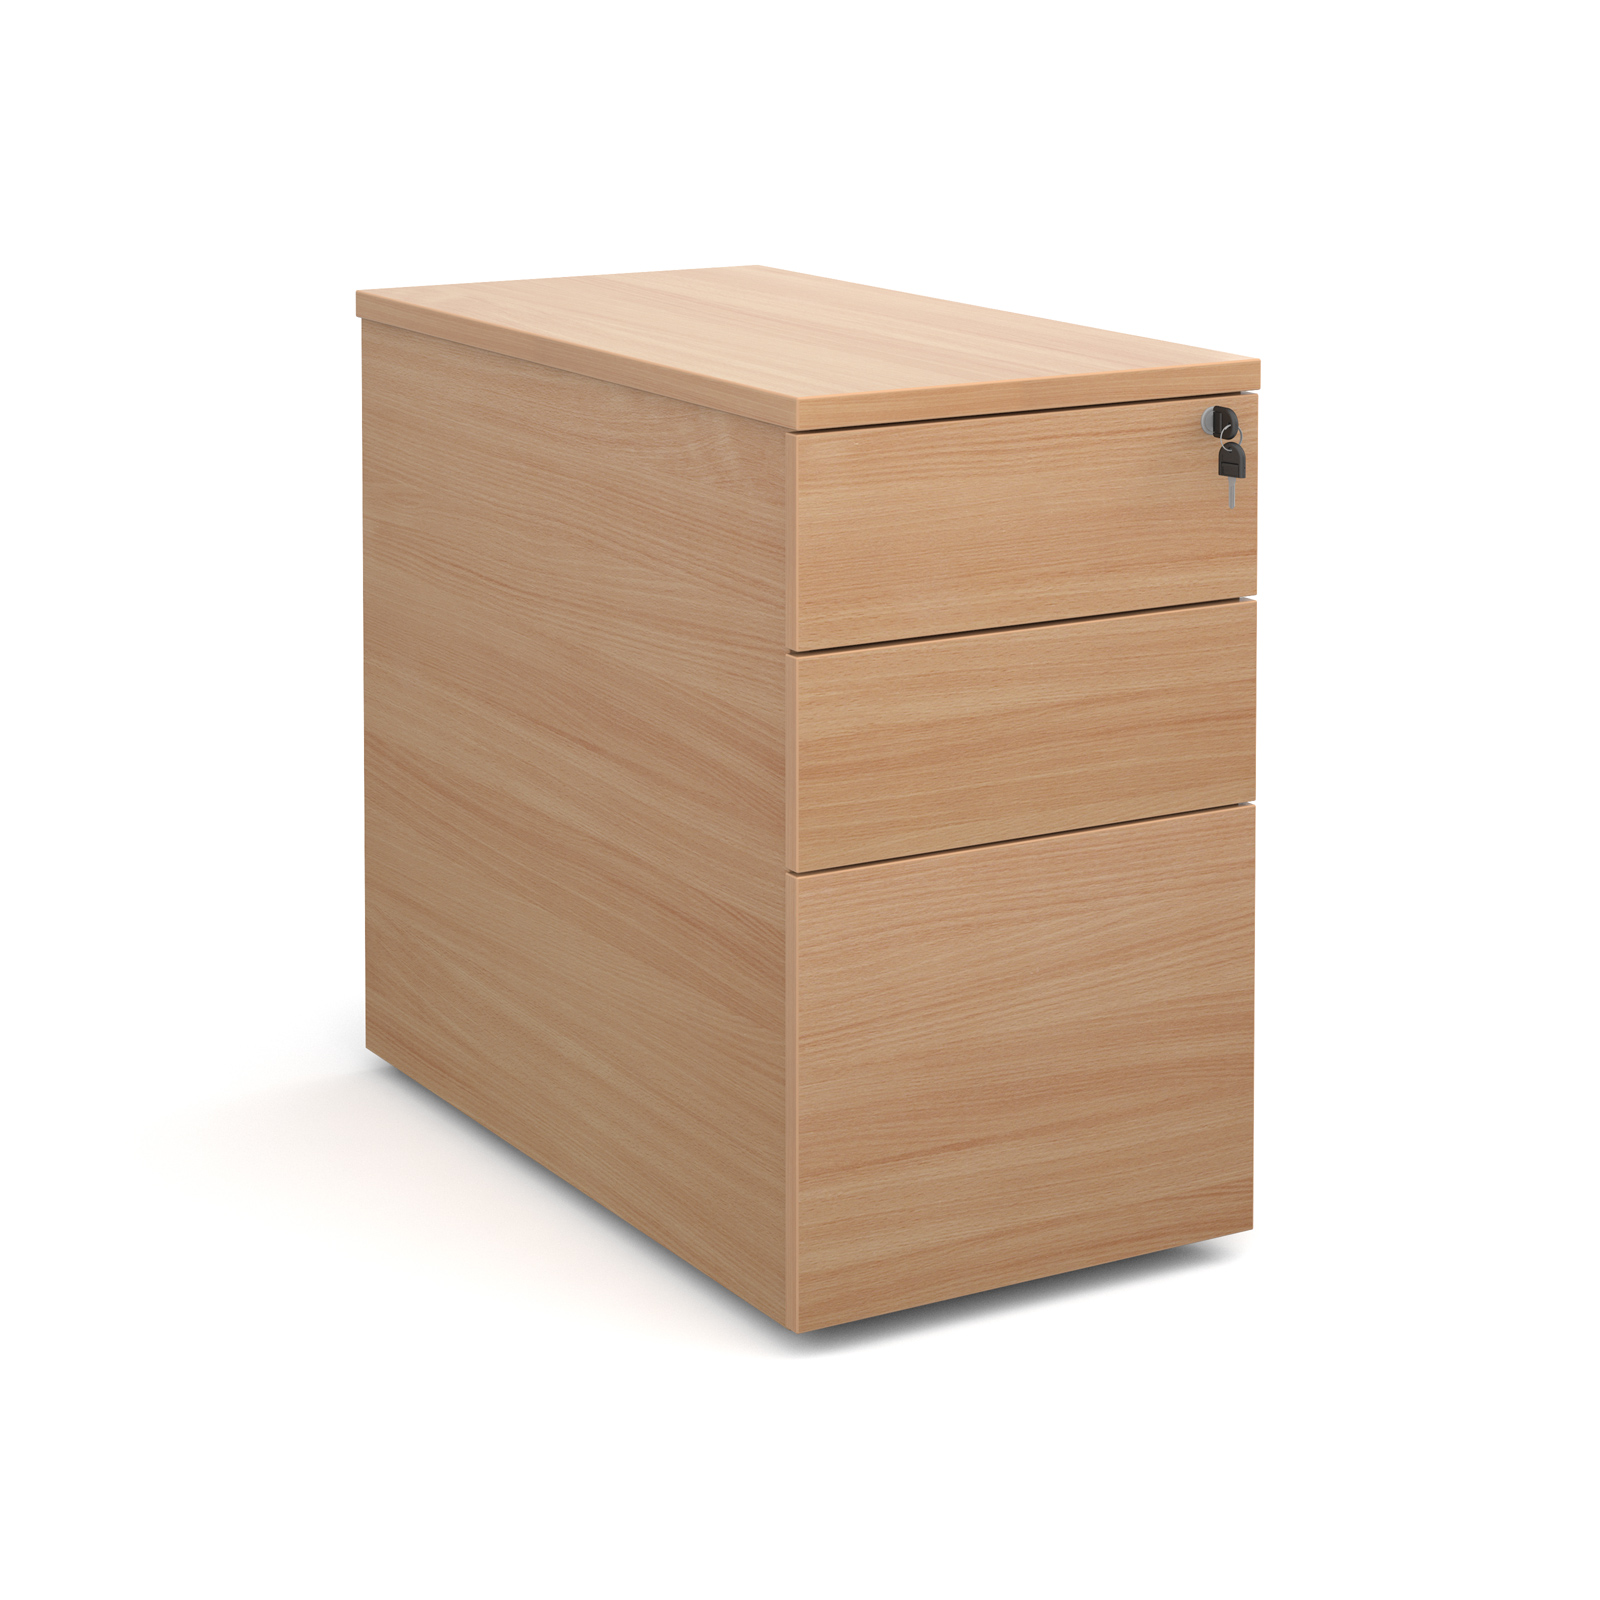 3 DRAWER DESK HIGH DELUXE PEDESTAL 800MM DEEP